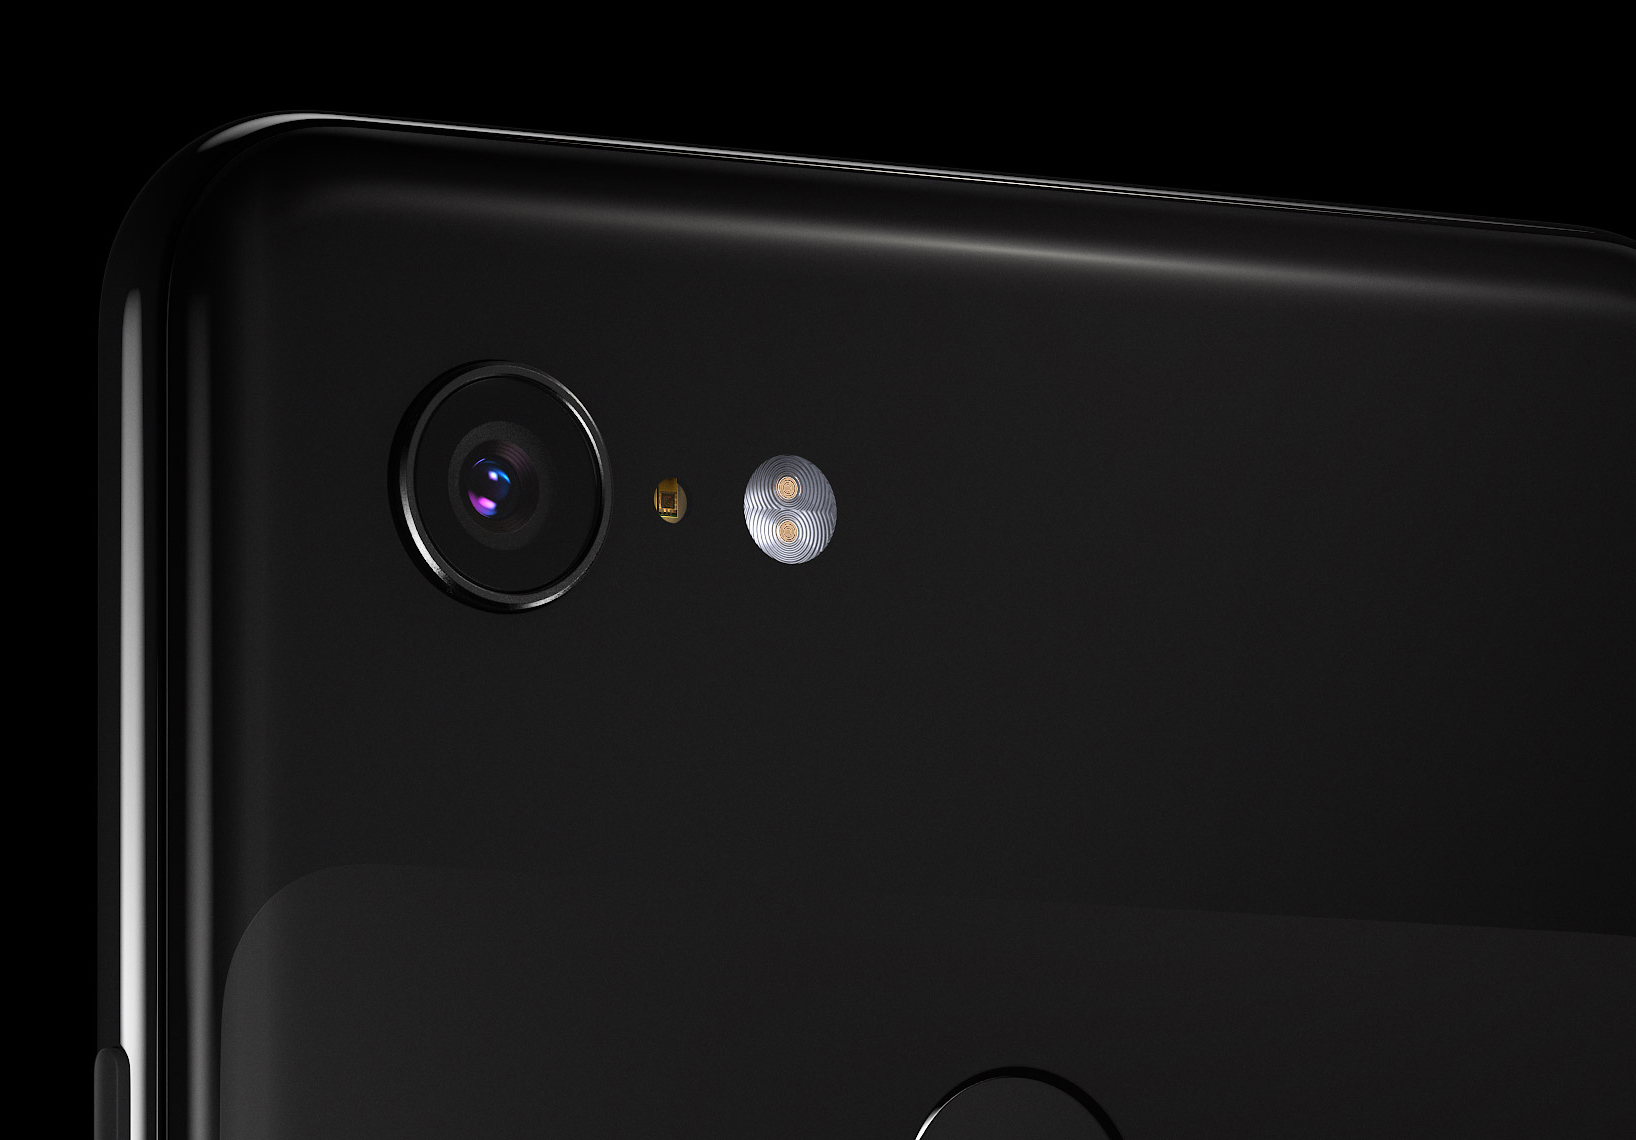 The Pixel 3 only has a single rear camera, but it delivers great shots, thanks to powerful software